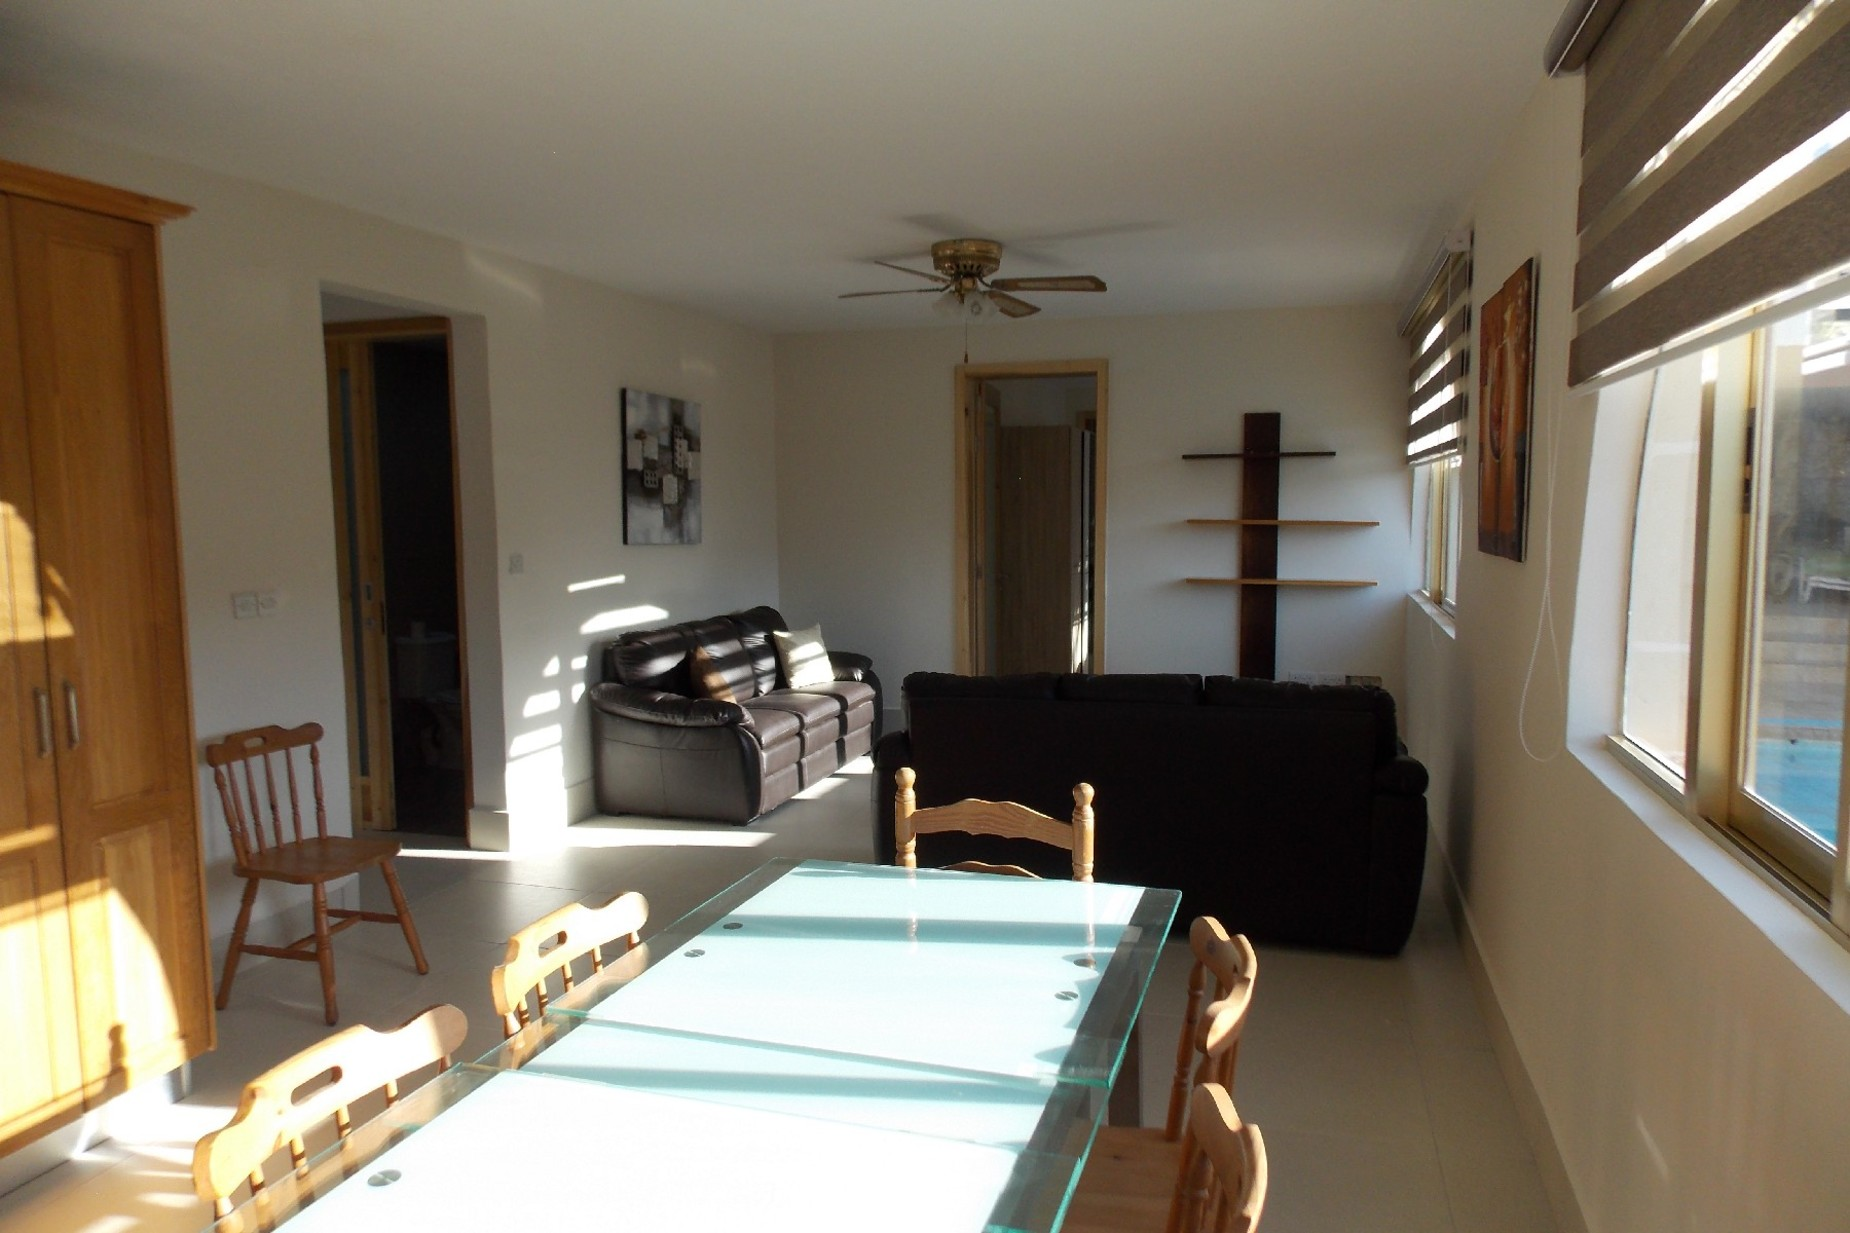 3 bed Apartment For Rent in Mellieha, Mellieha - thumb 6